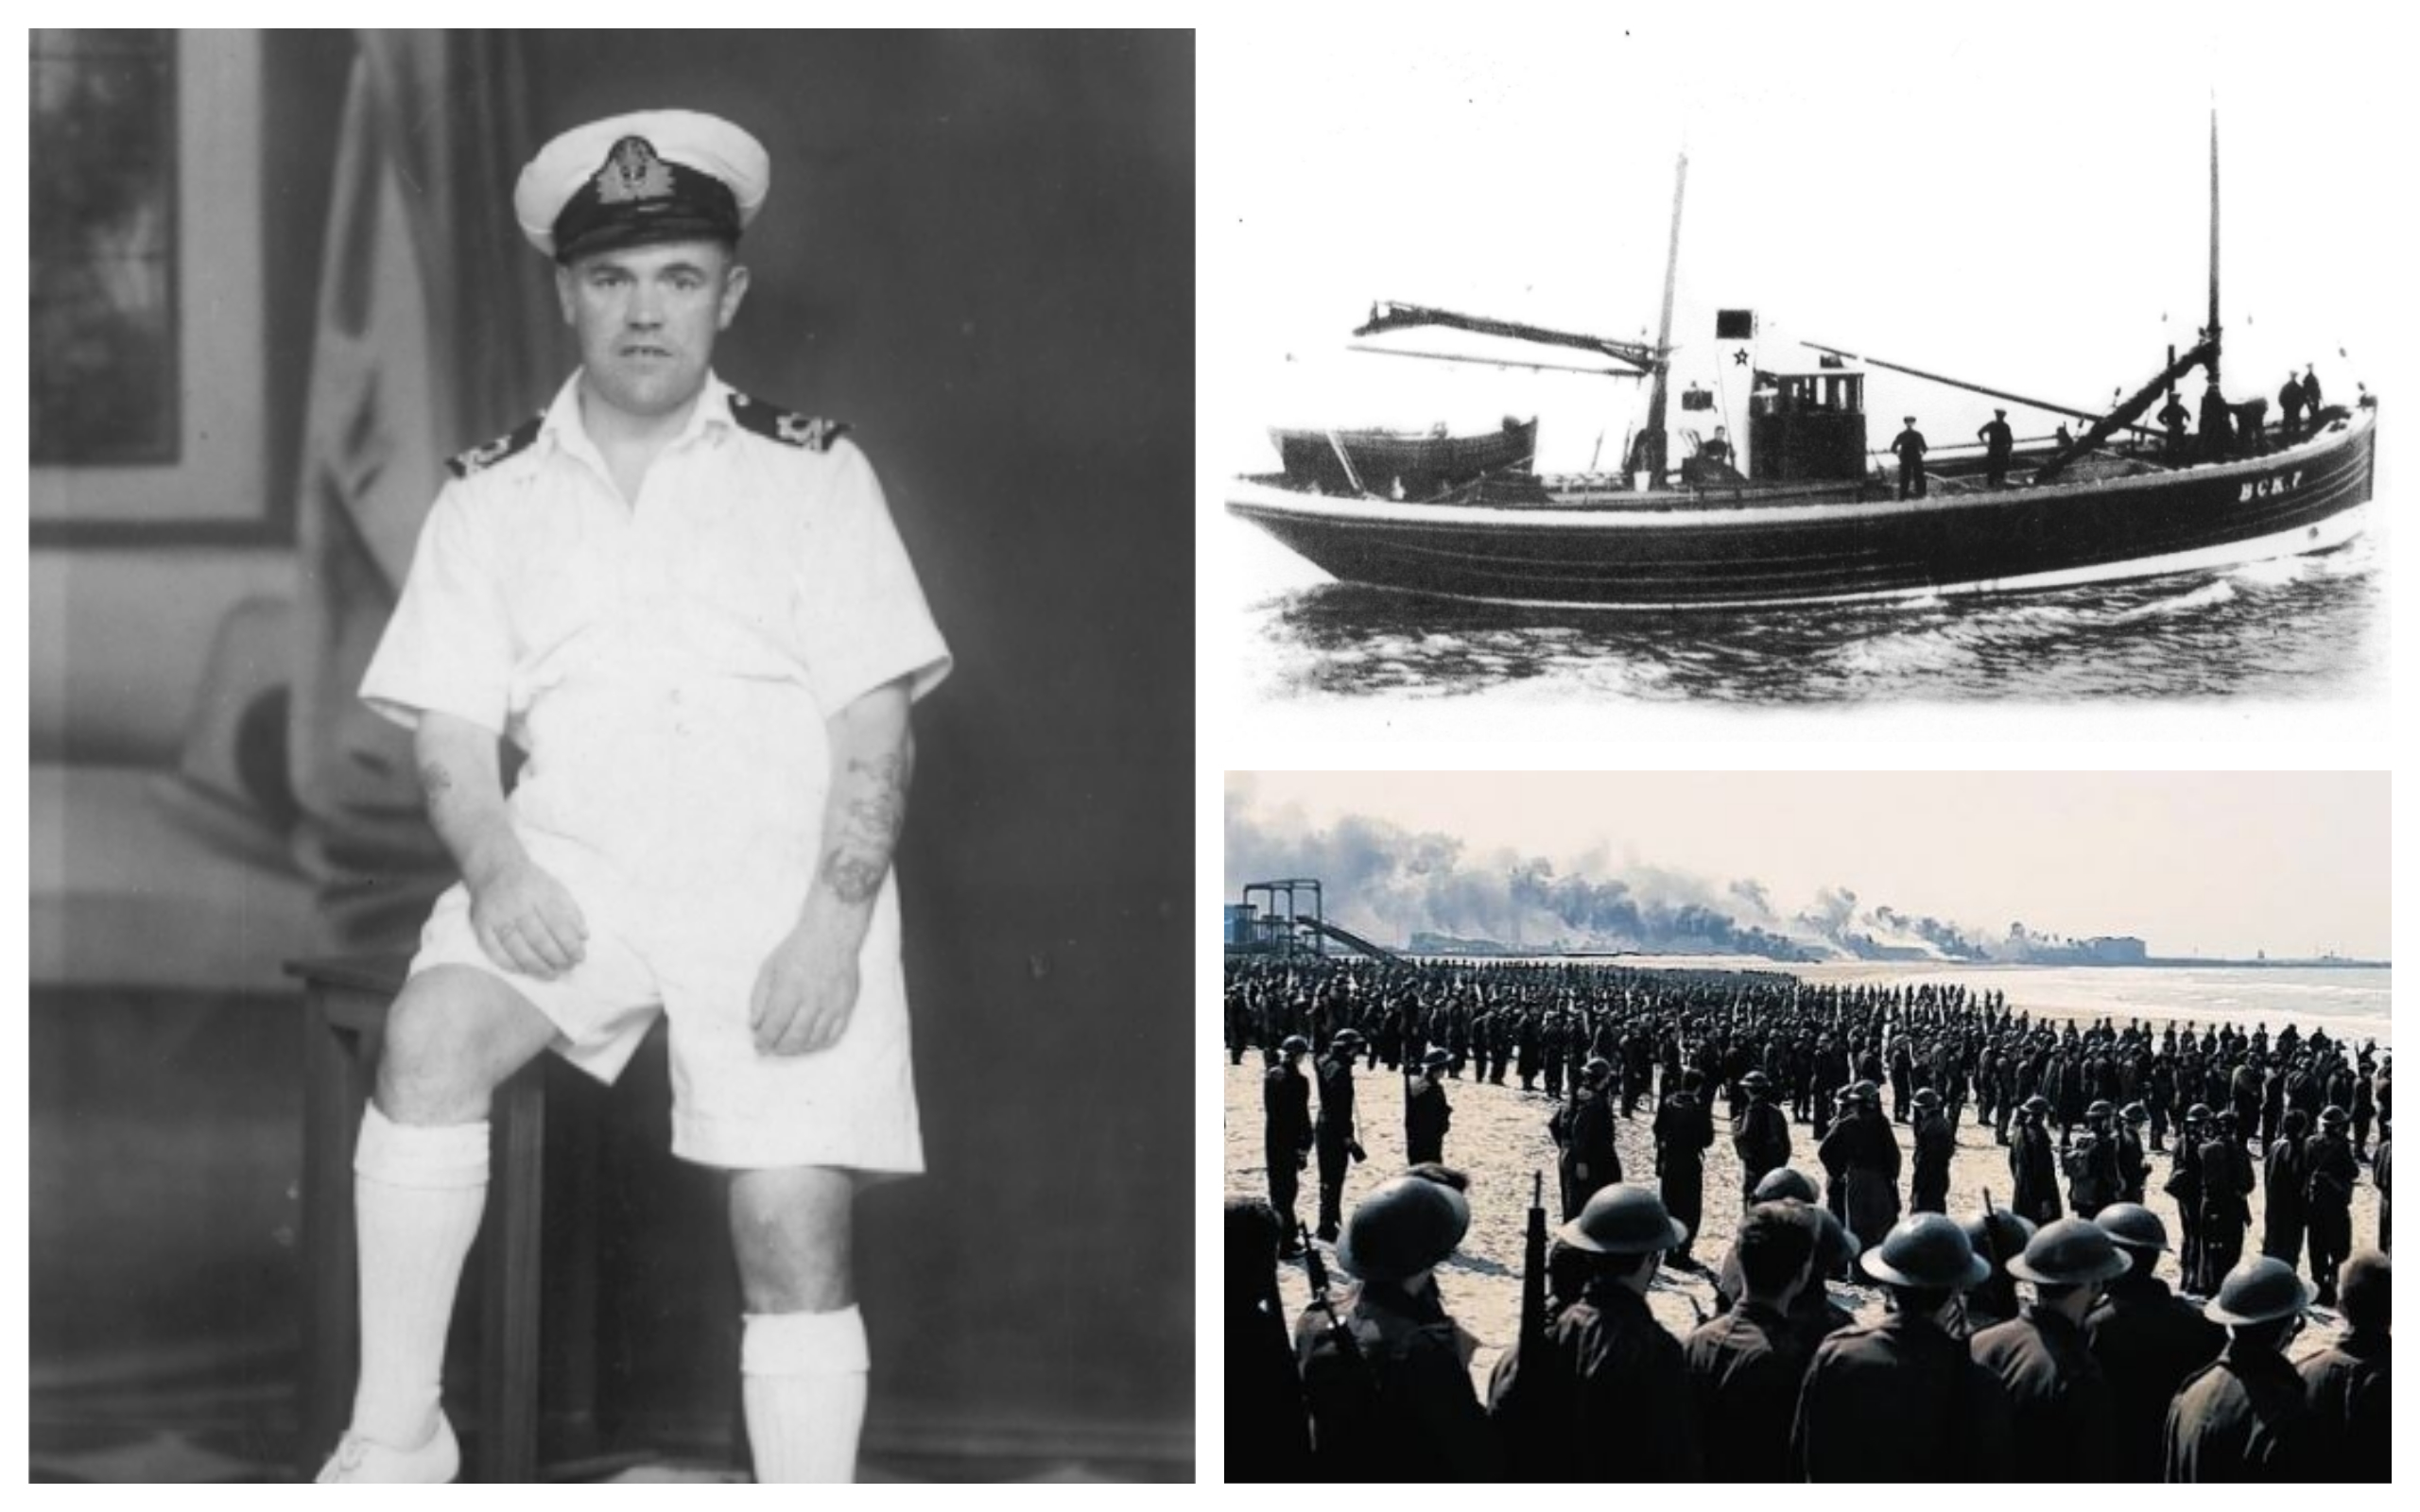 Skipper Rory McLean (left), the Nautilus (top right) and a scene from the new Christopher Nolan film